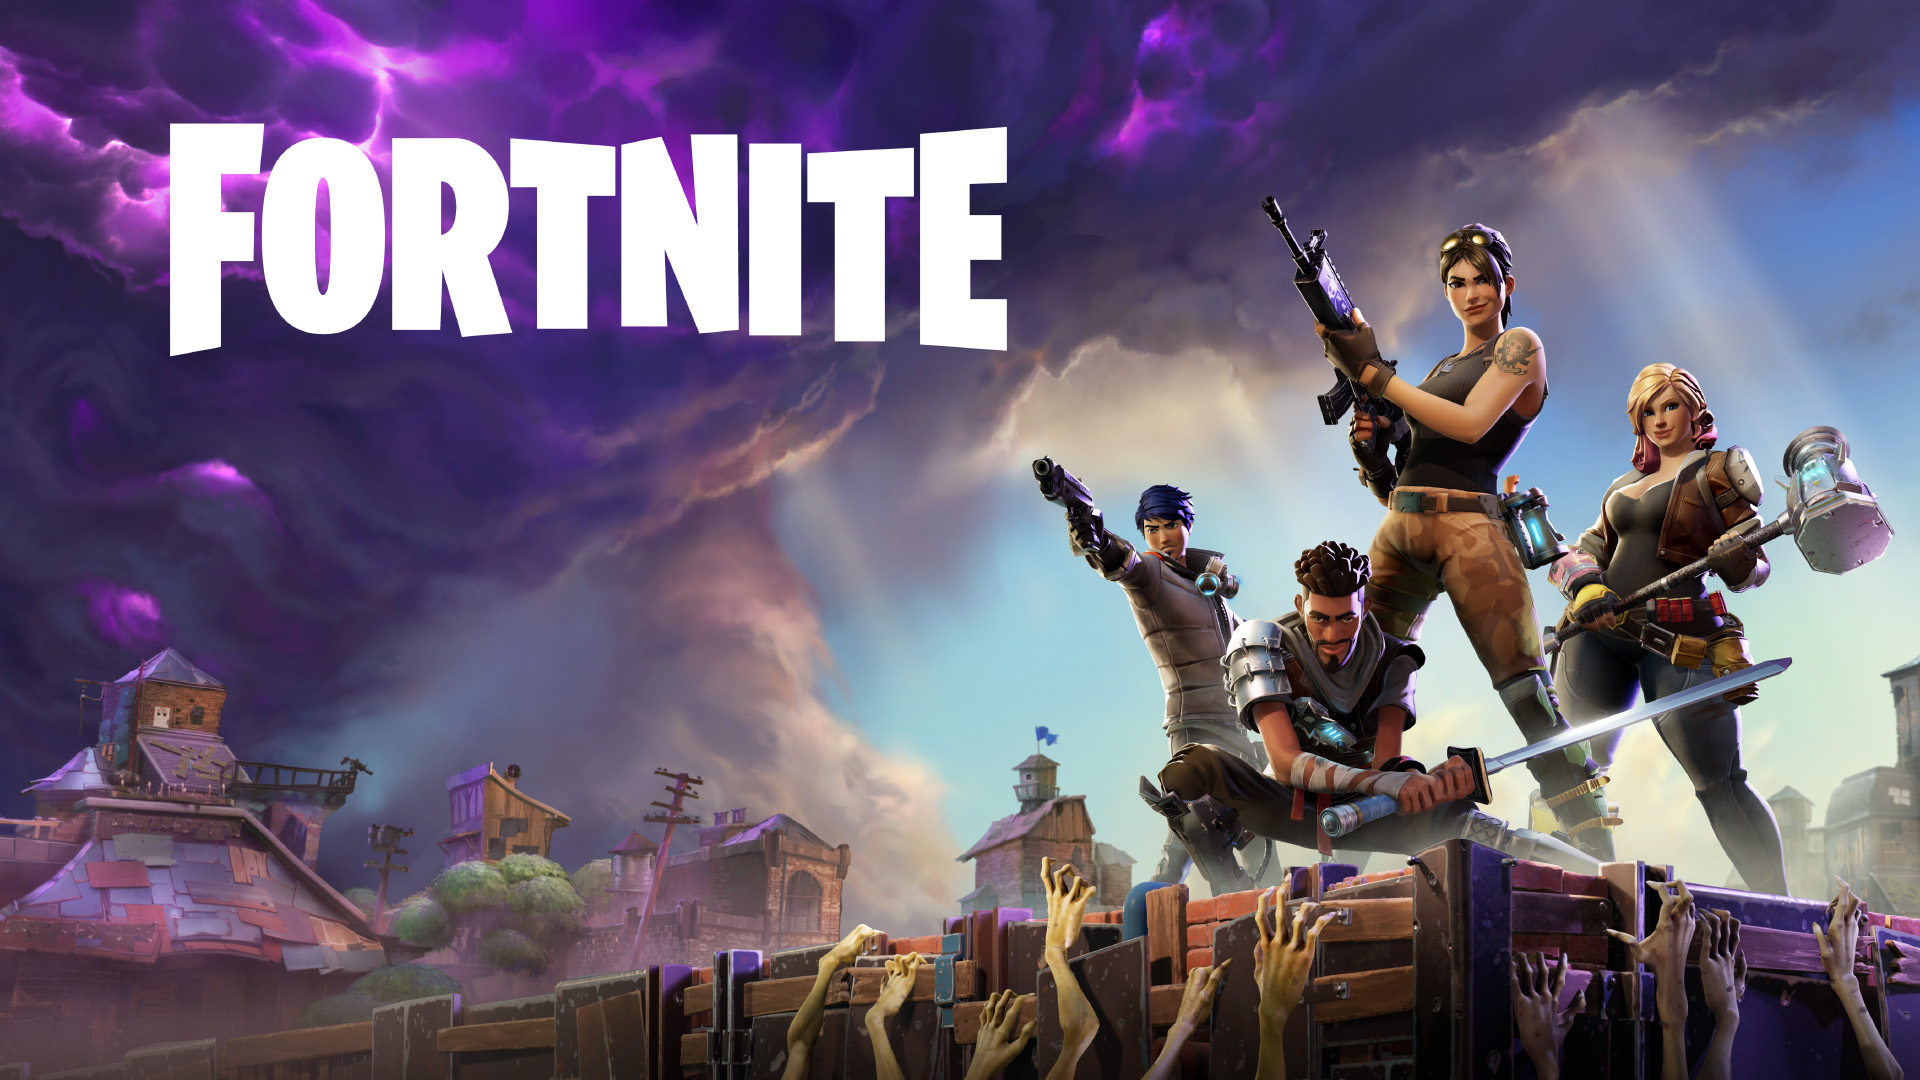 A review of the game Fortnite